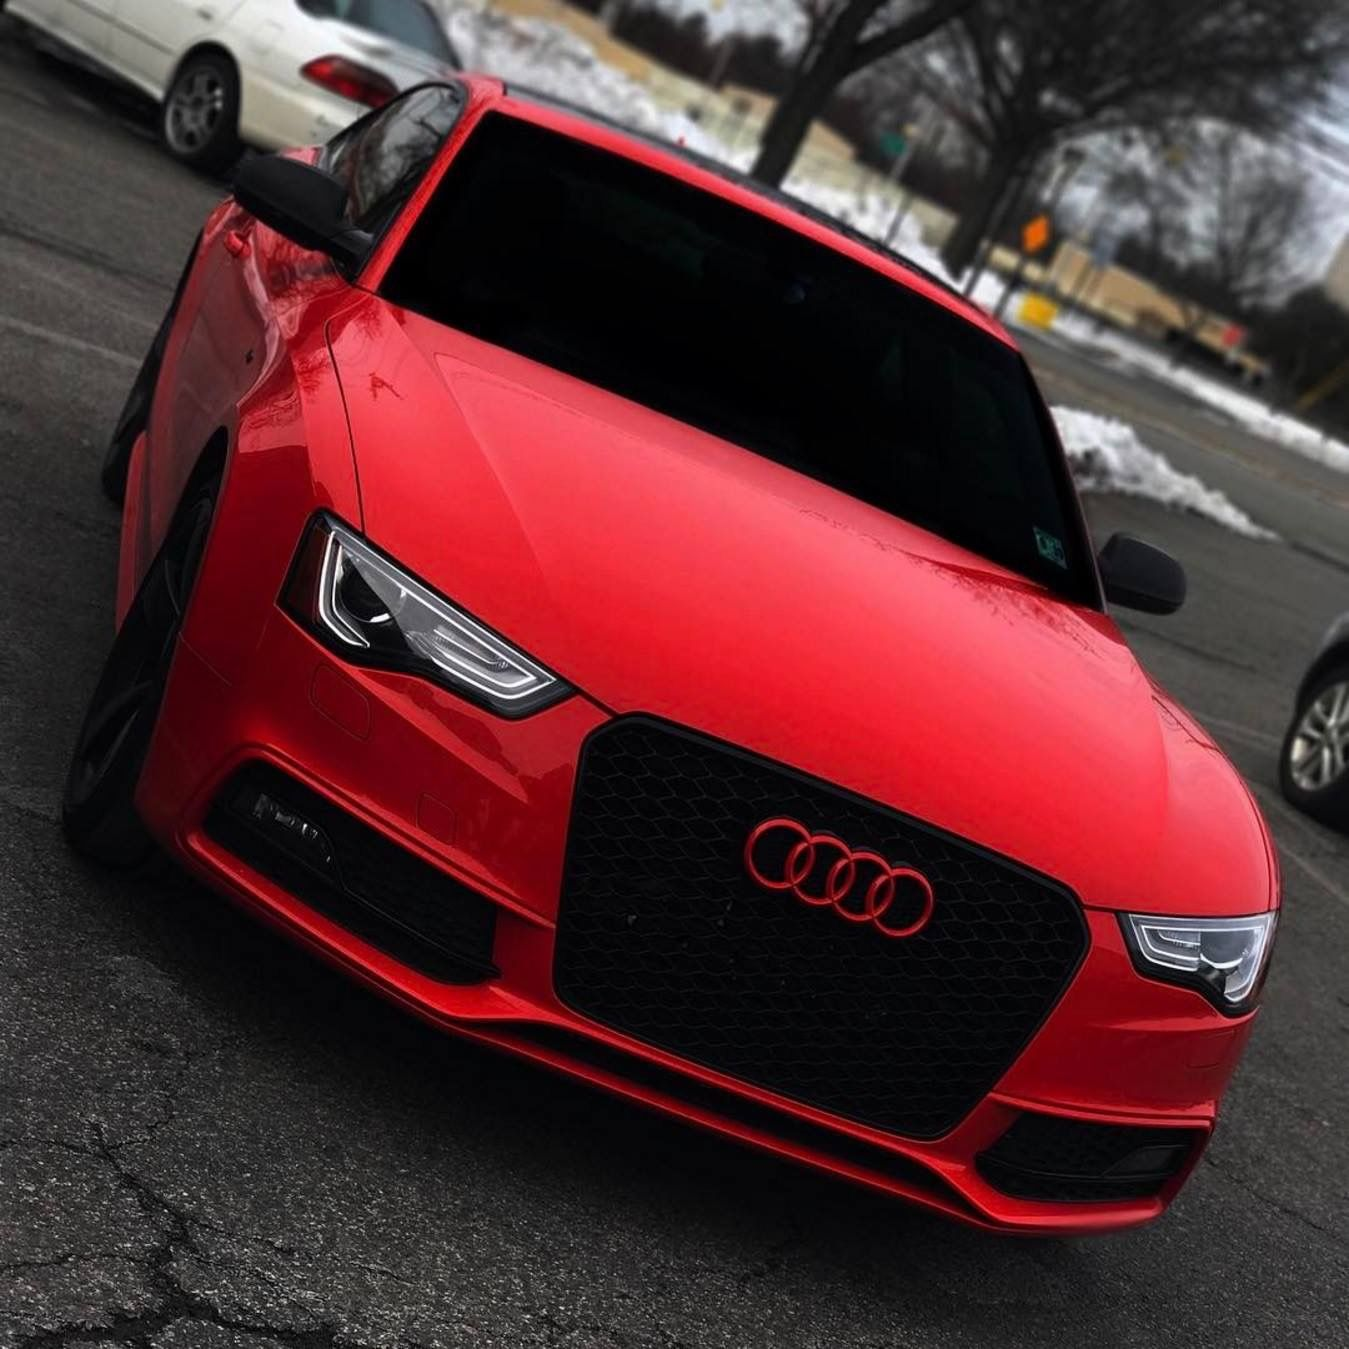 High End Luxury Cars Audi: Audi Cars Image By Kevin Clancy On Cars